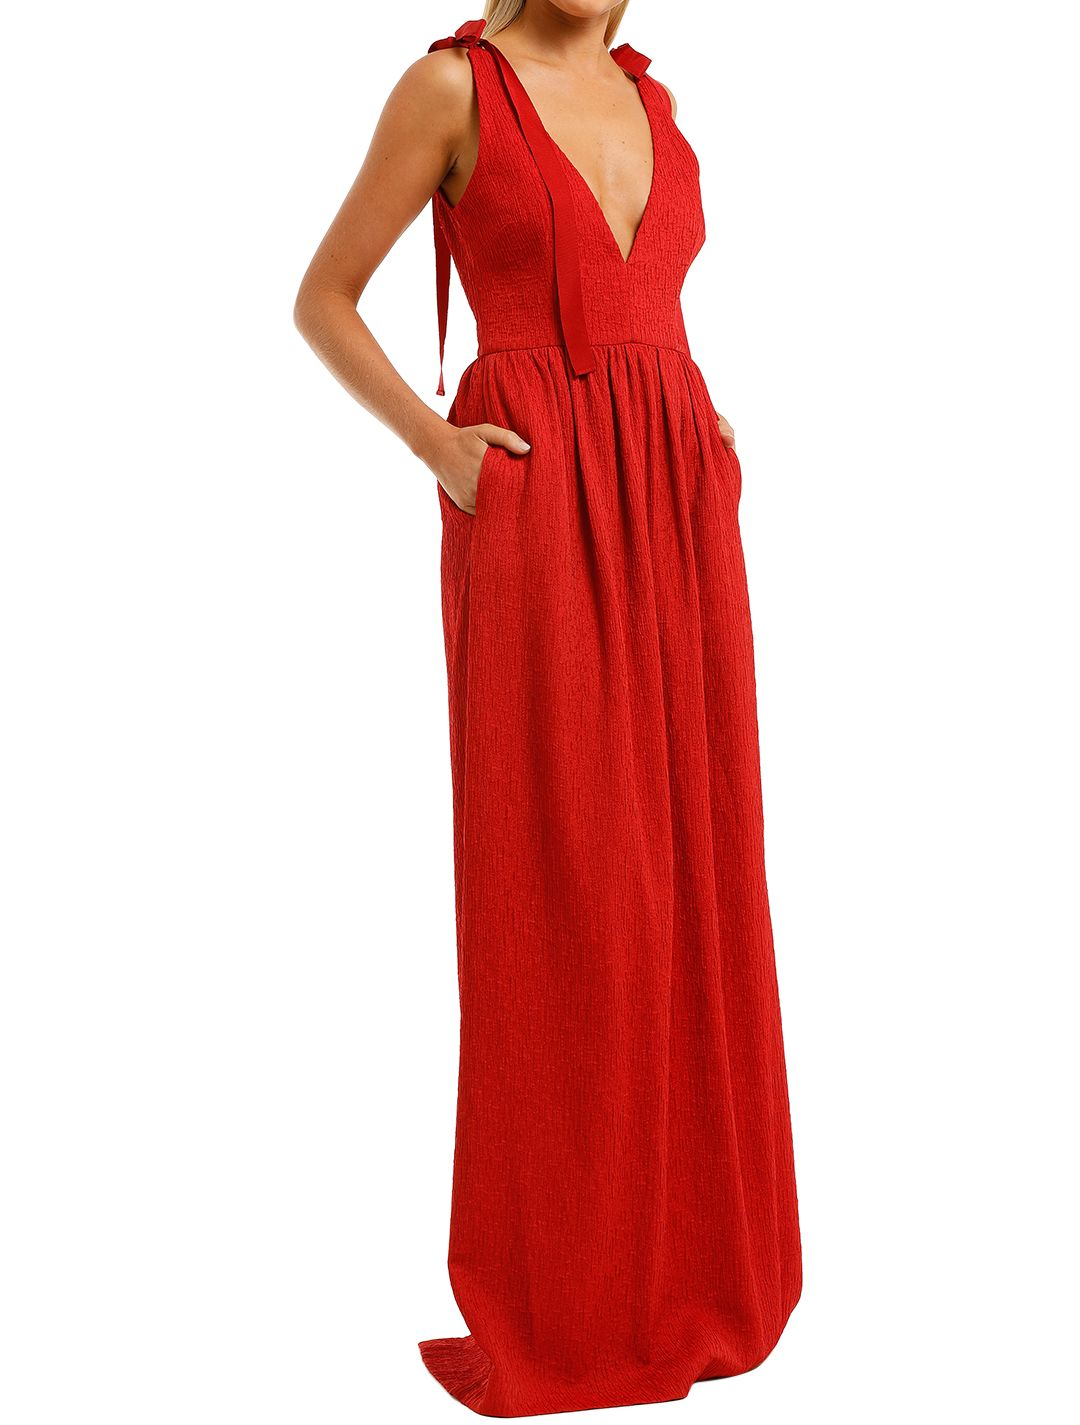 Rebecca-Vallance-Harlow-Tie-Gown-Red-Side